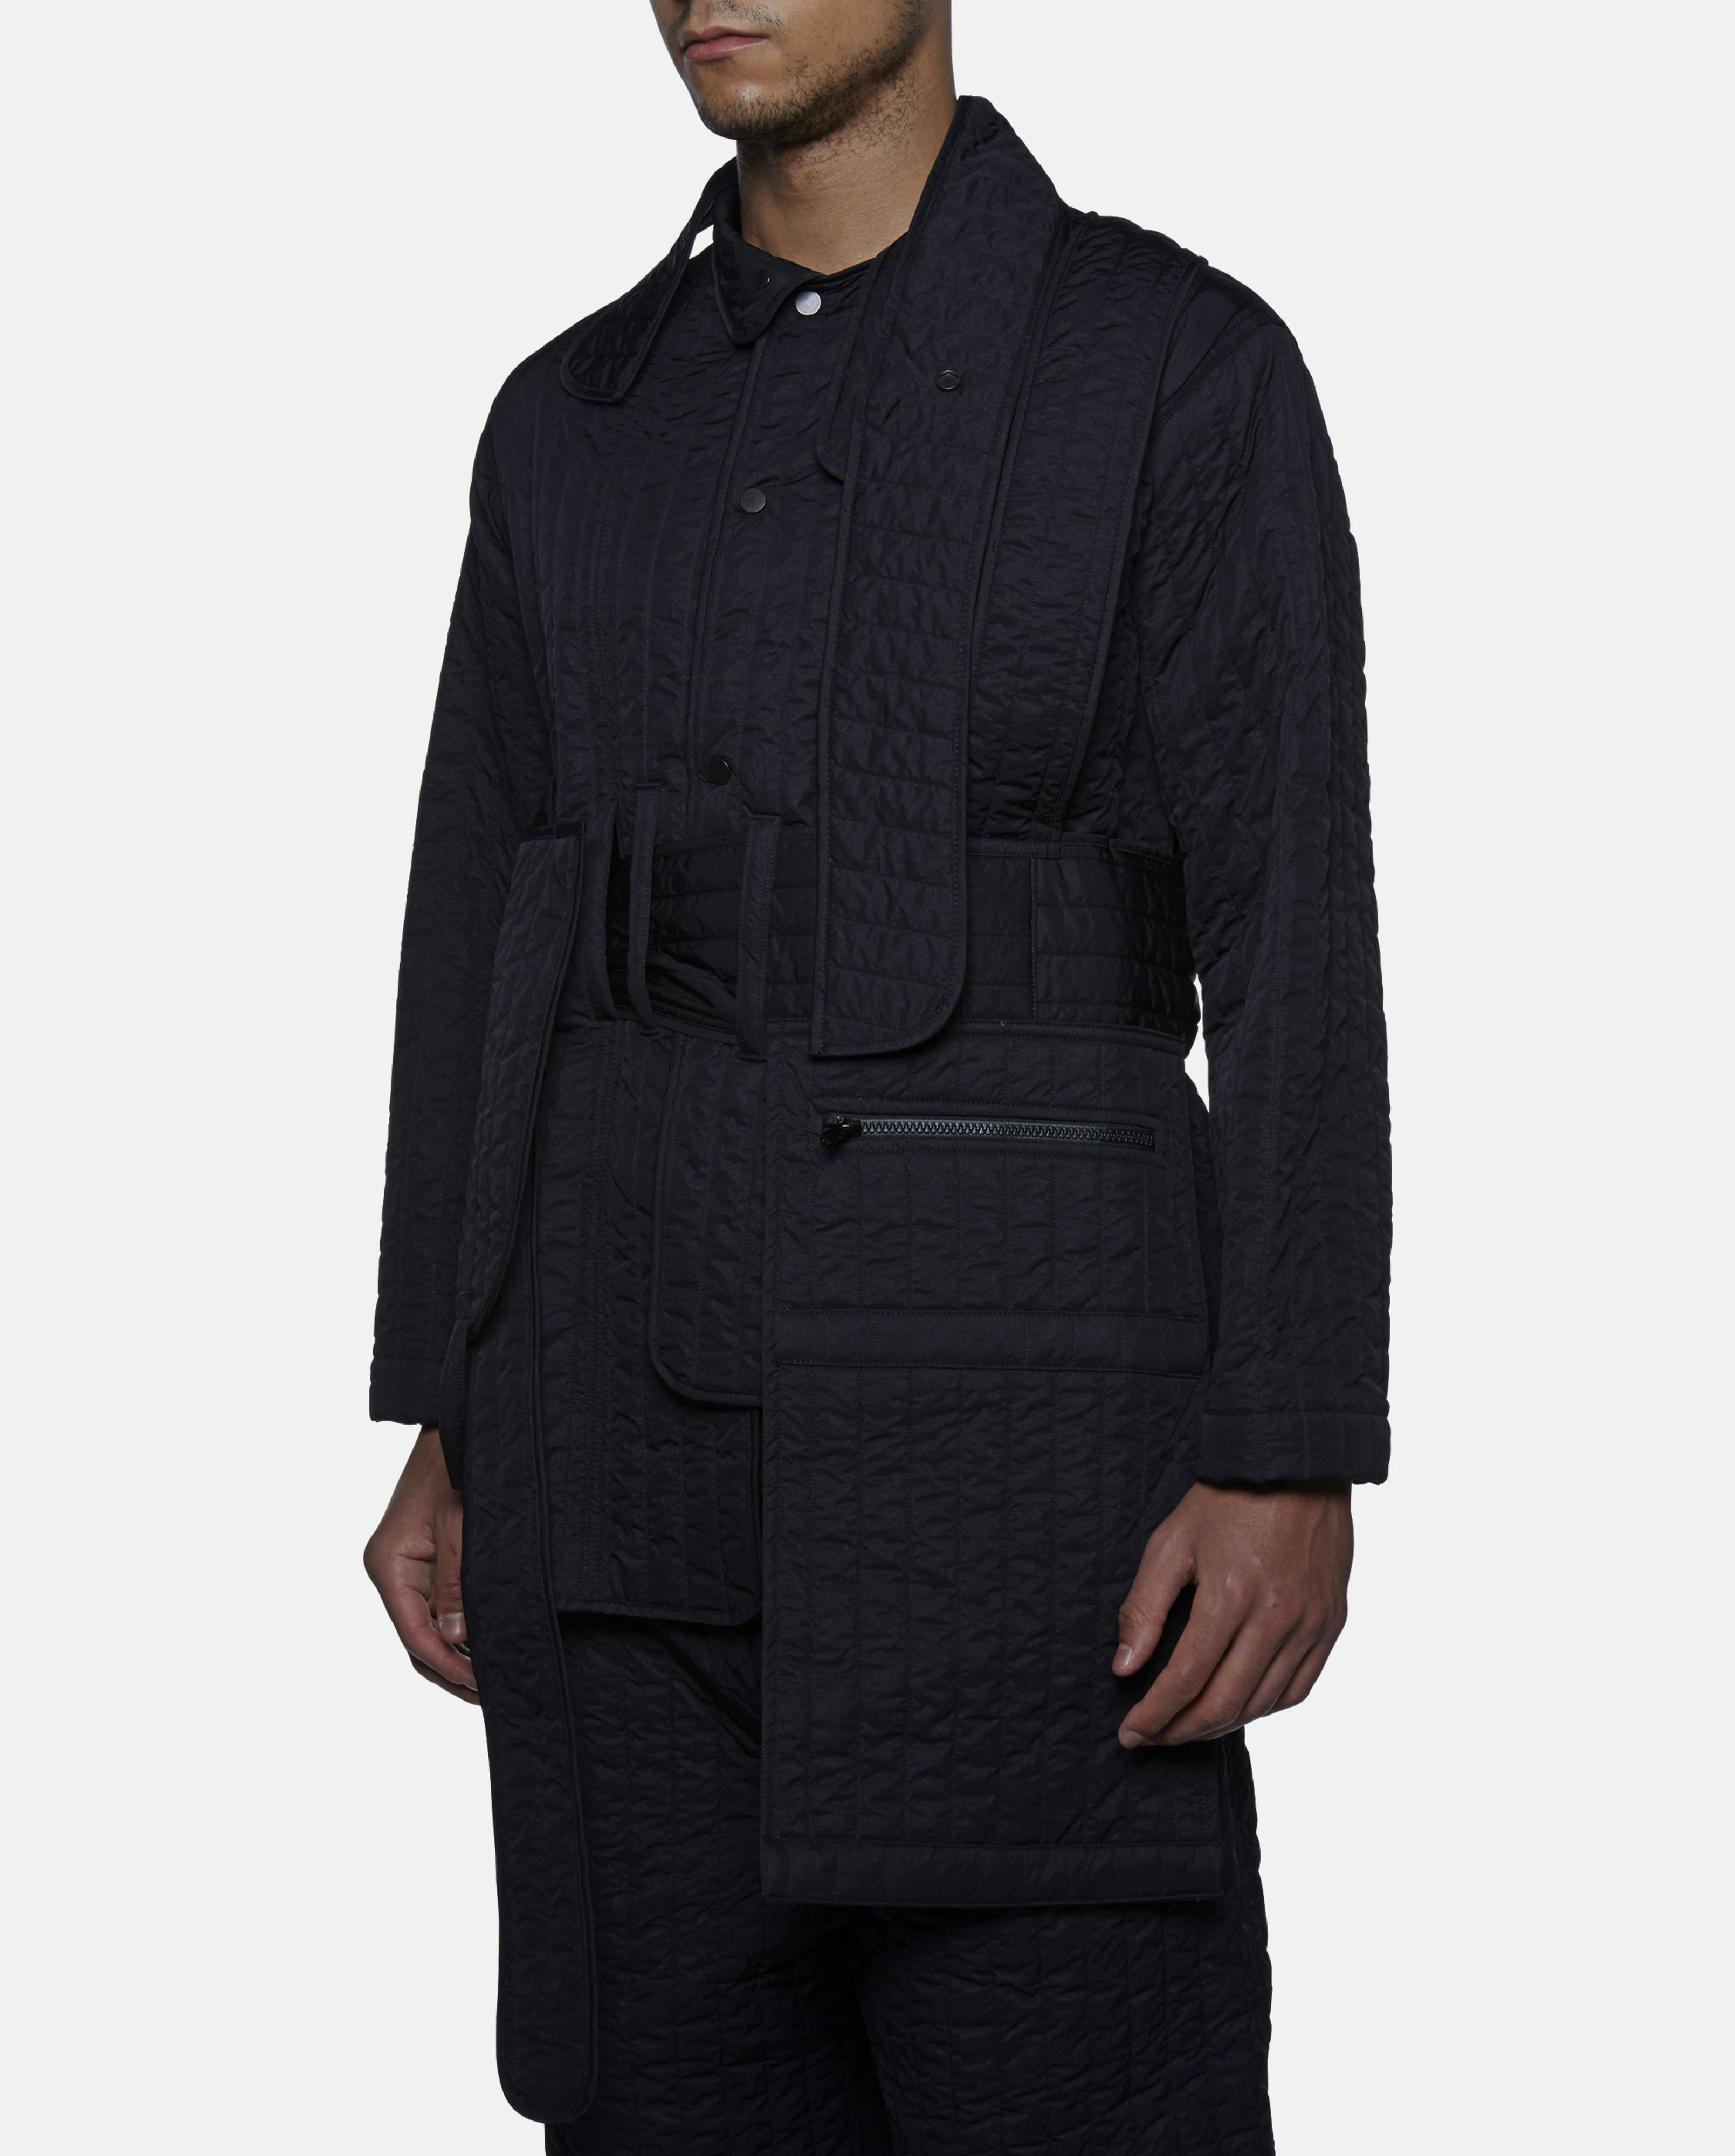 Quilted Black Jacket By Craig Green Featuring A Wrap Around Tie Belt Button Down Fastening And Oversized Pockets Mens Fashion Online Clothes Jackets